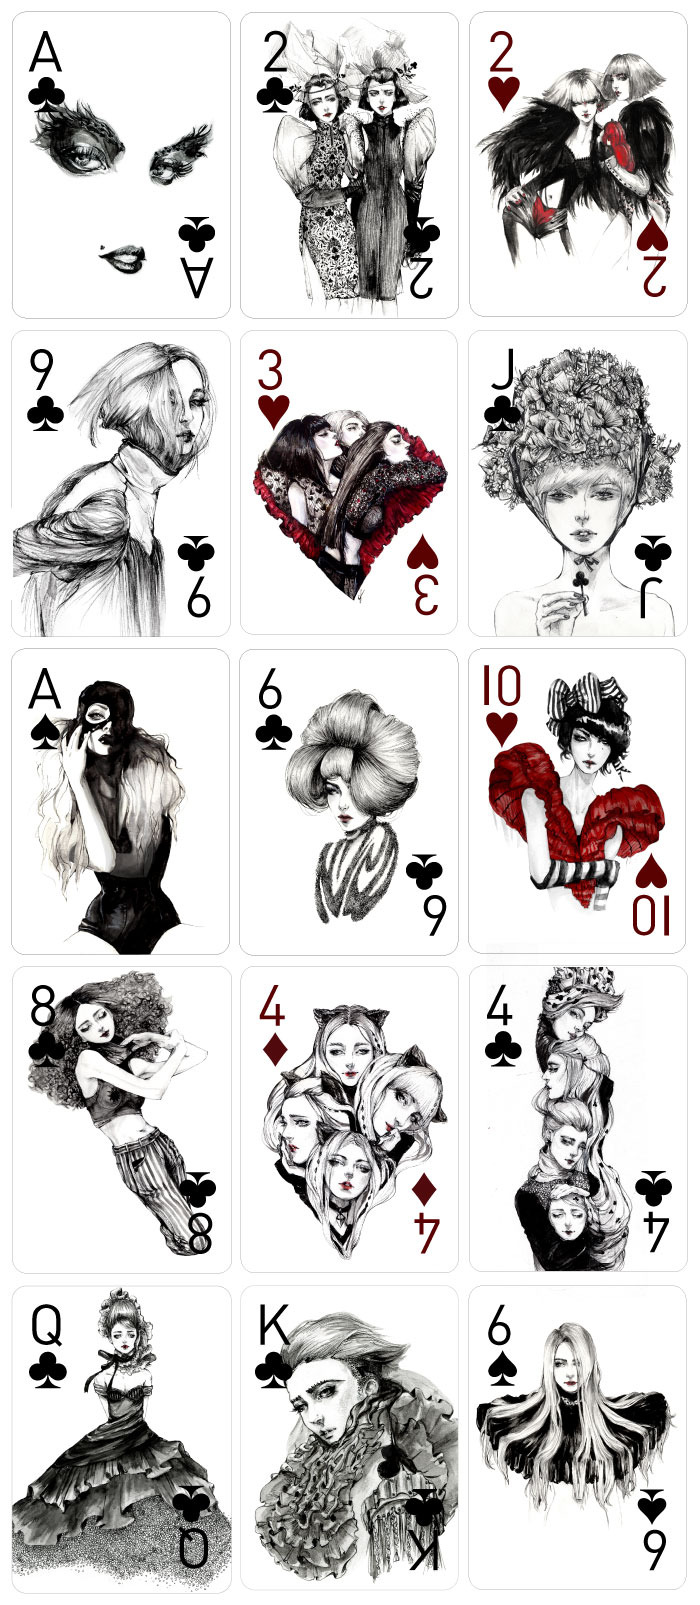 Kickstarter: Decked Out Fashion Playing Cards by Connie